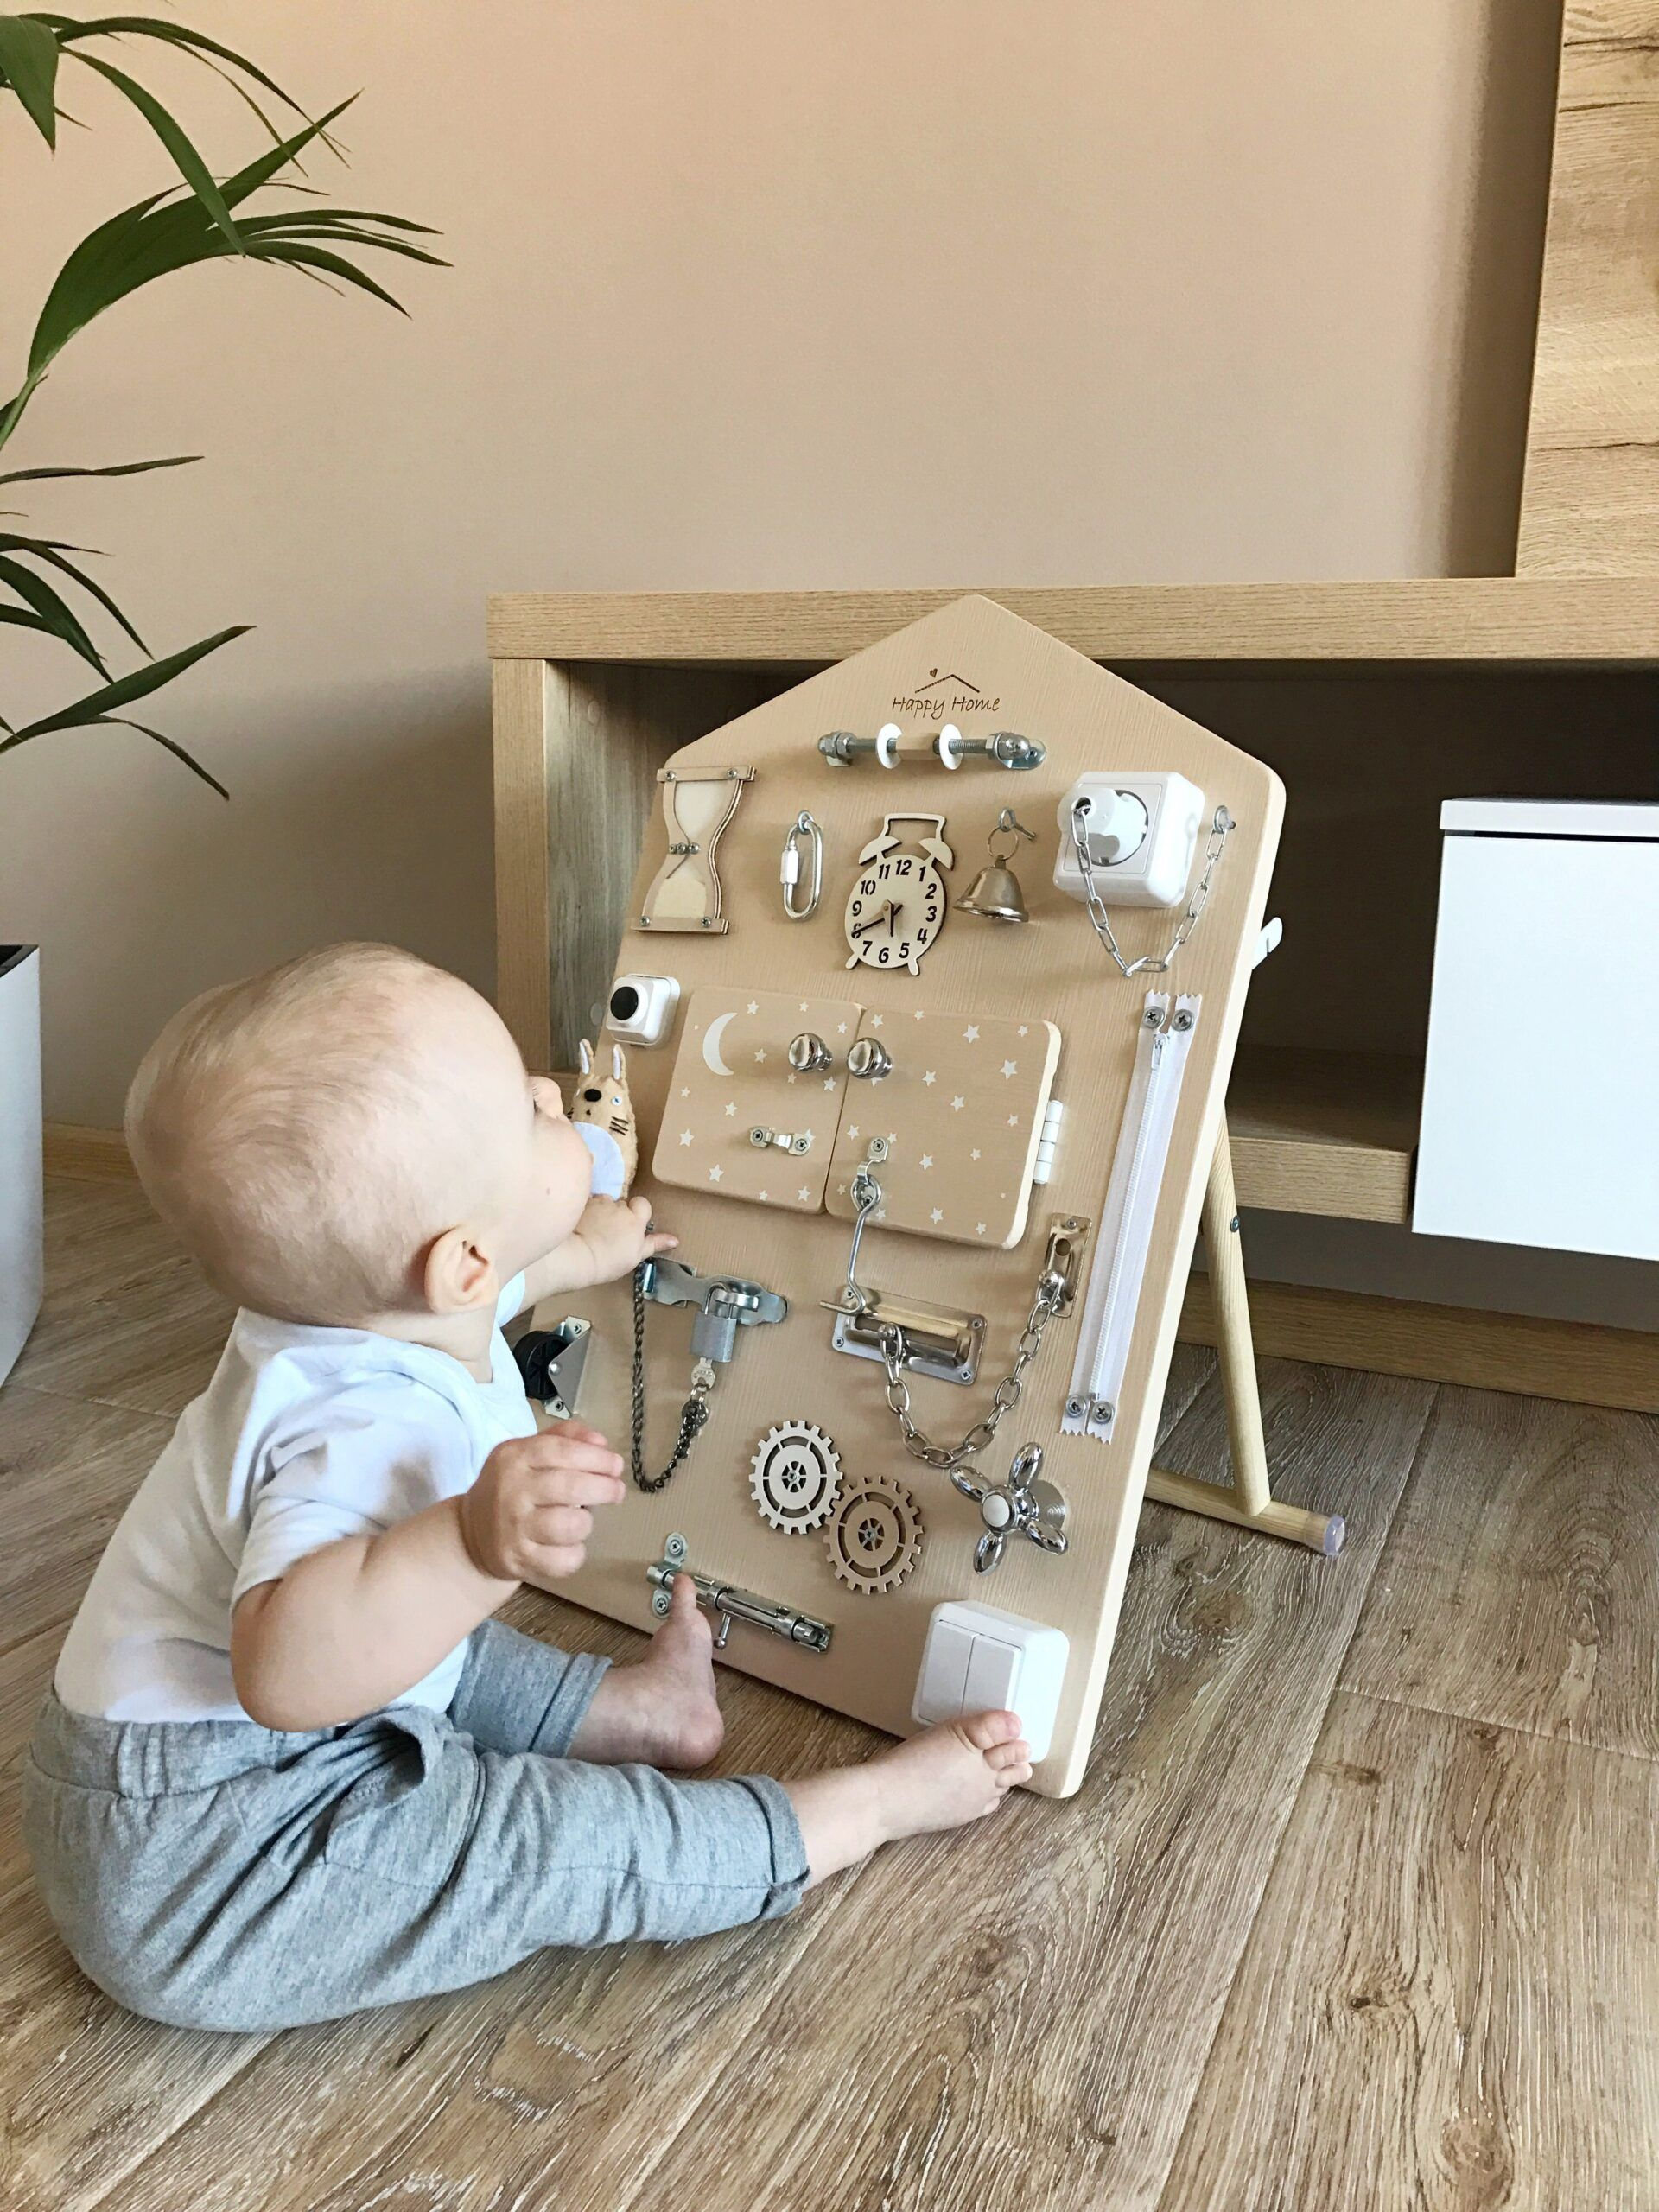 Pin By Tanja Swierzy On Sensory Board In 2020 Baby Activity Board Busy Boards For Toddlers Toddler Activity Board